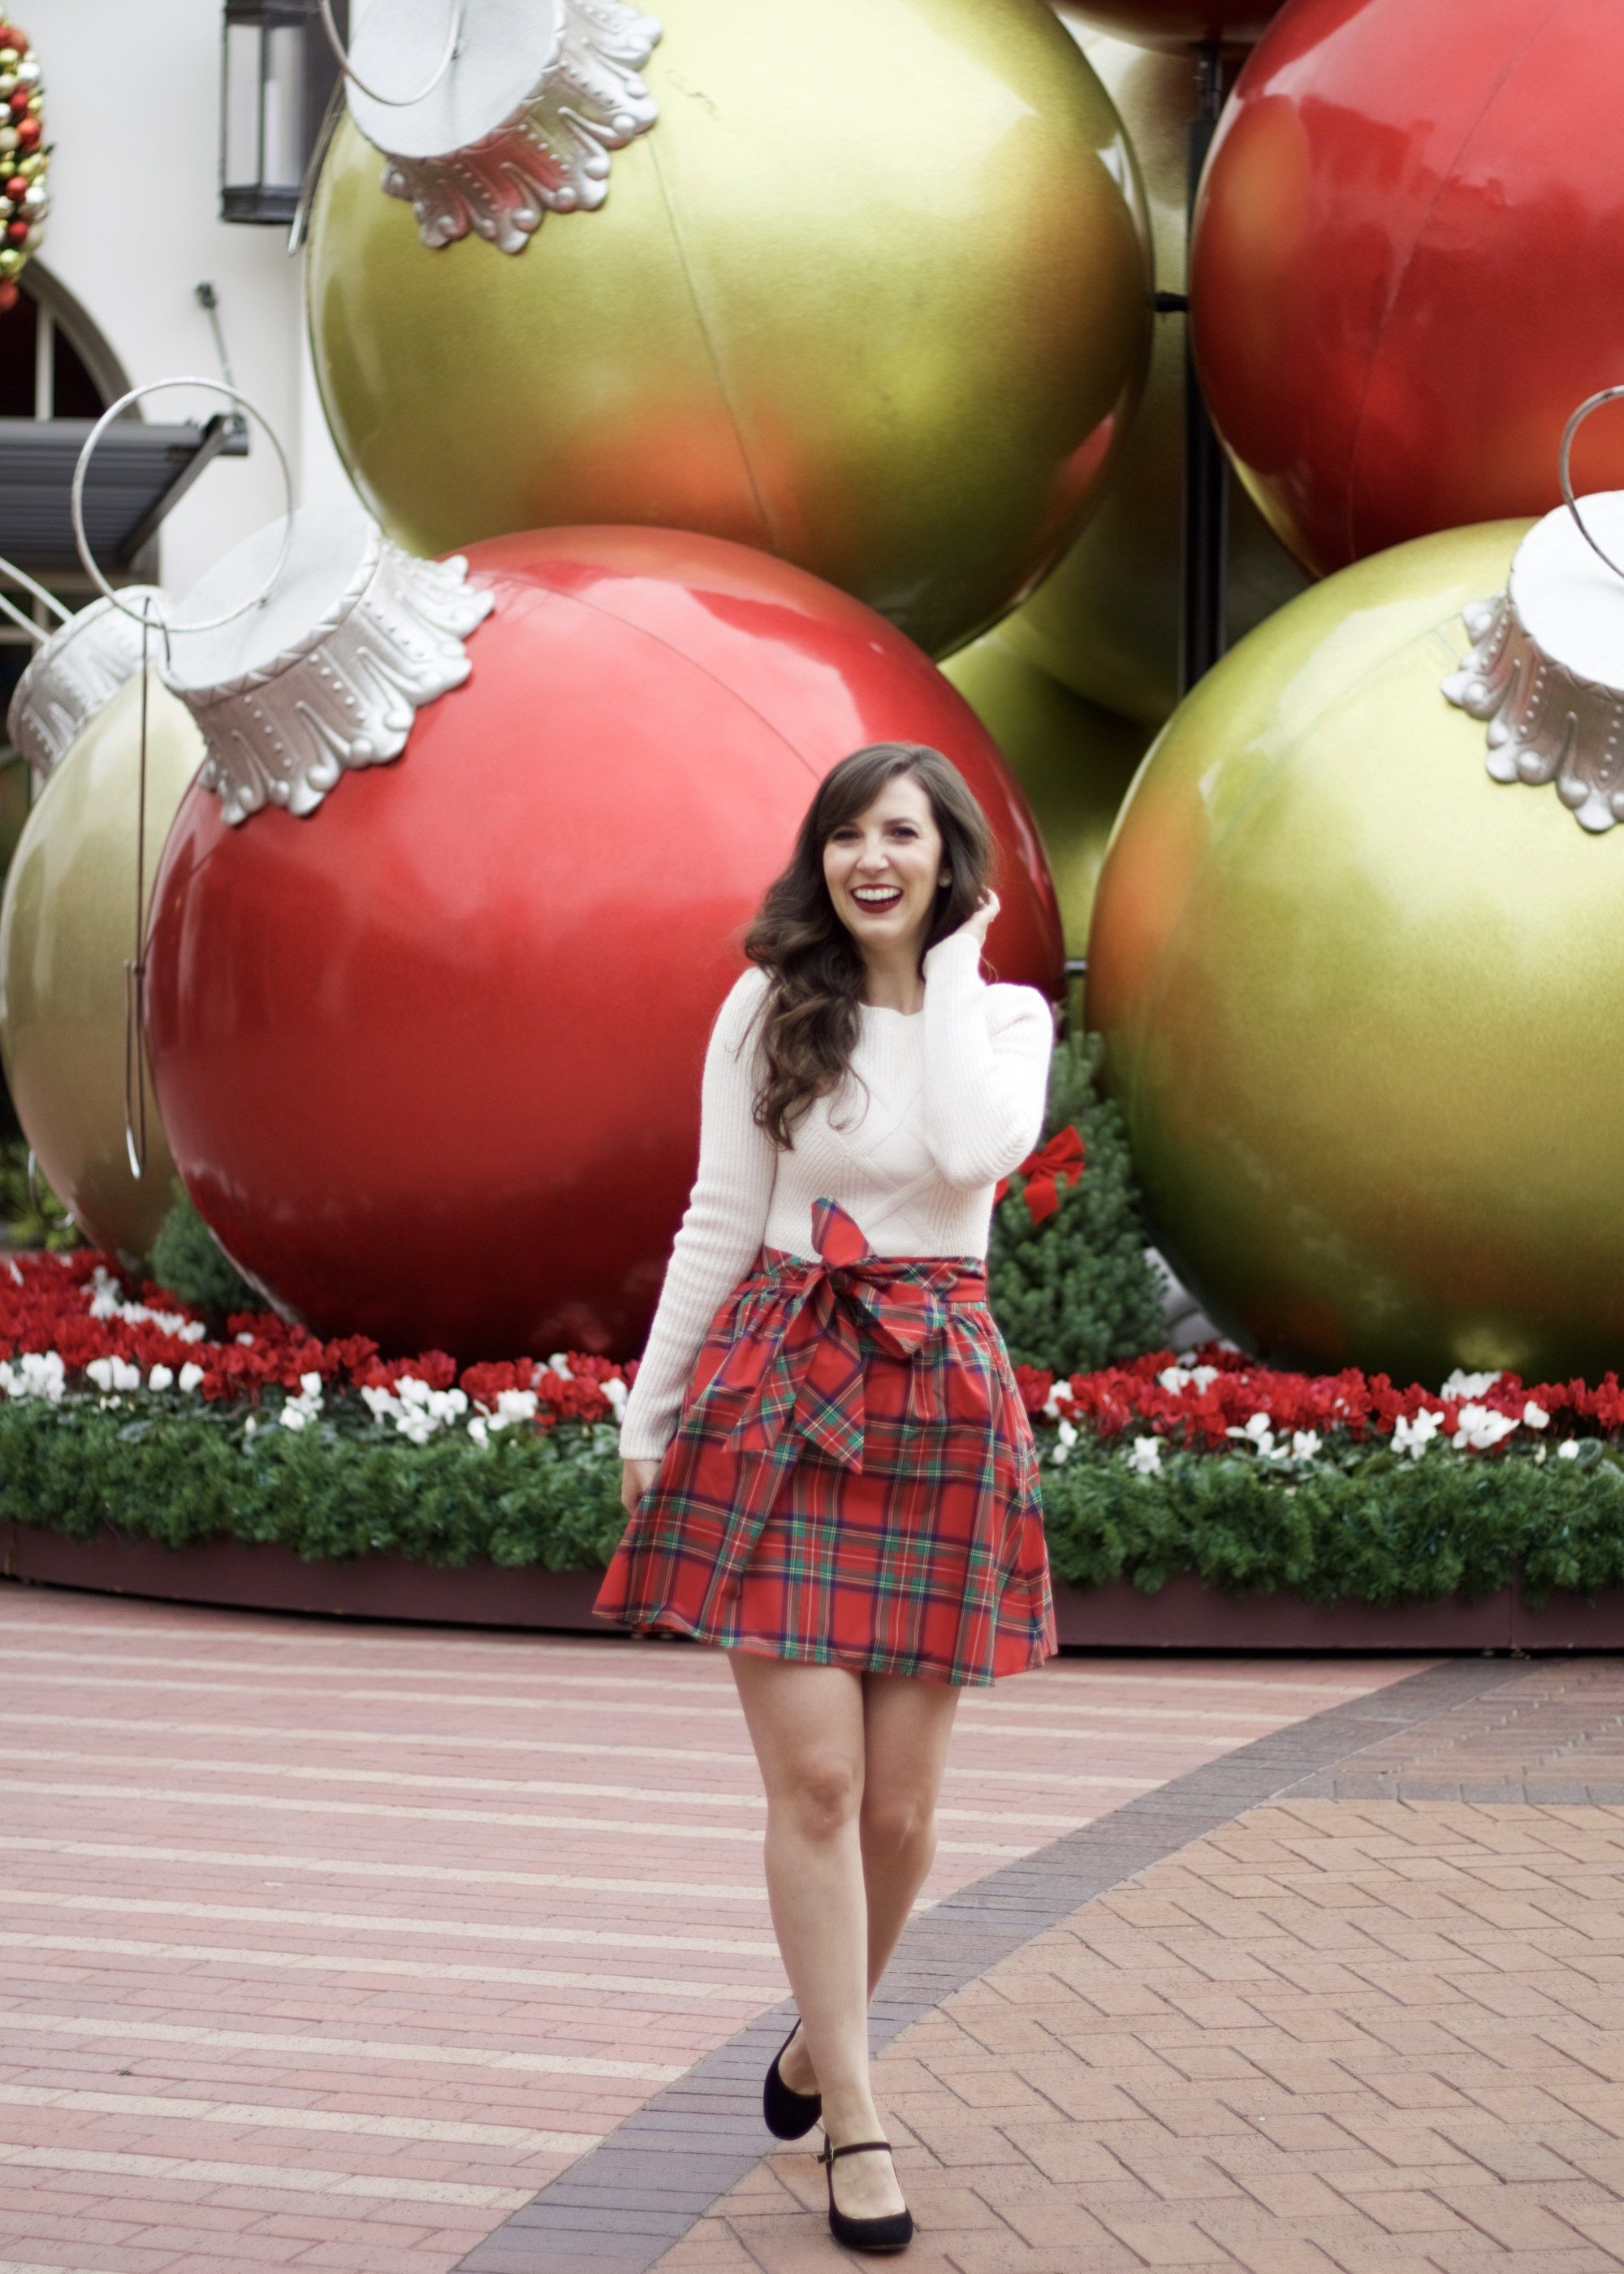 Christmas Plaid Outfit Inspiration. #plaid #christmasplaid #skirt #christmasoutfit #plaidskirt #bow #sweater #cableknit